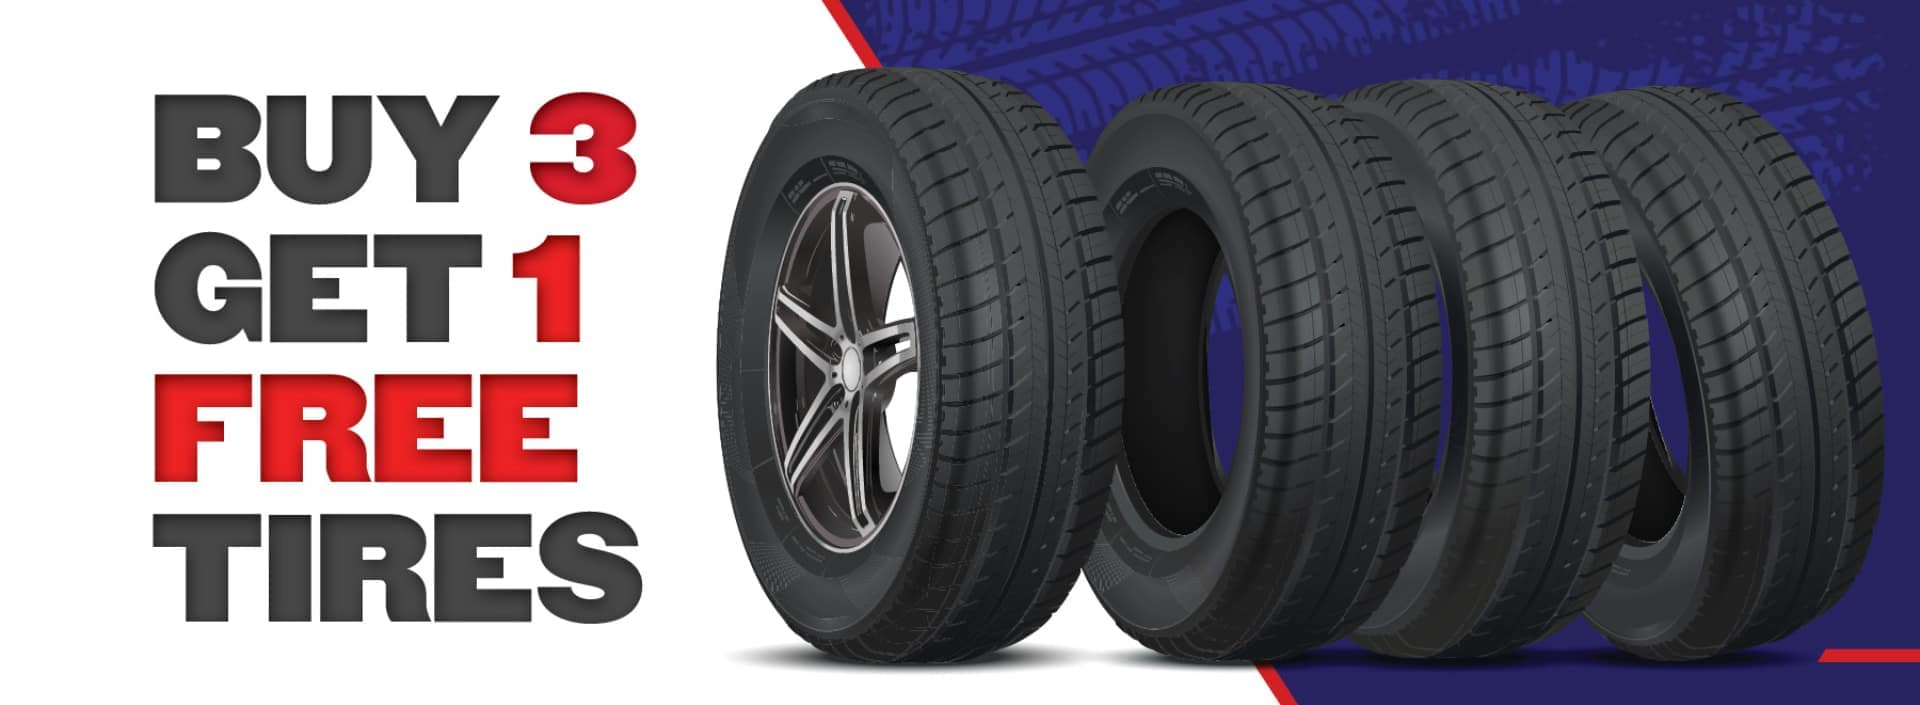 Buy 3 get 1 free tire banner